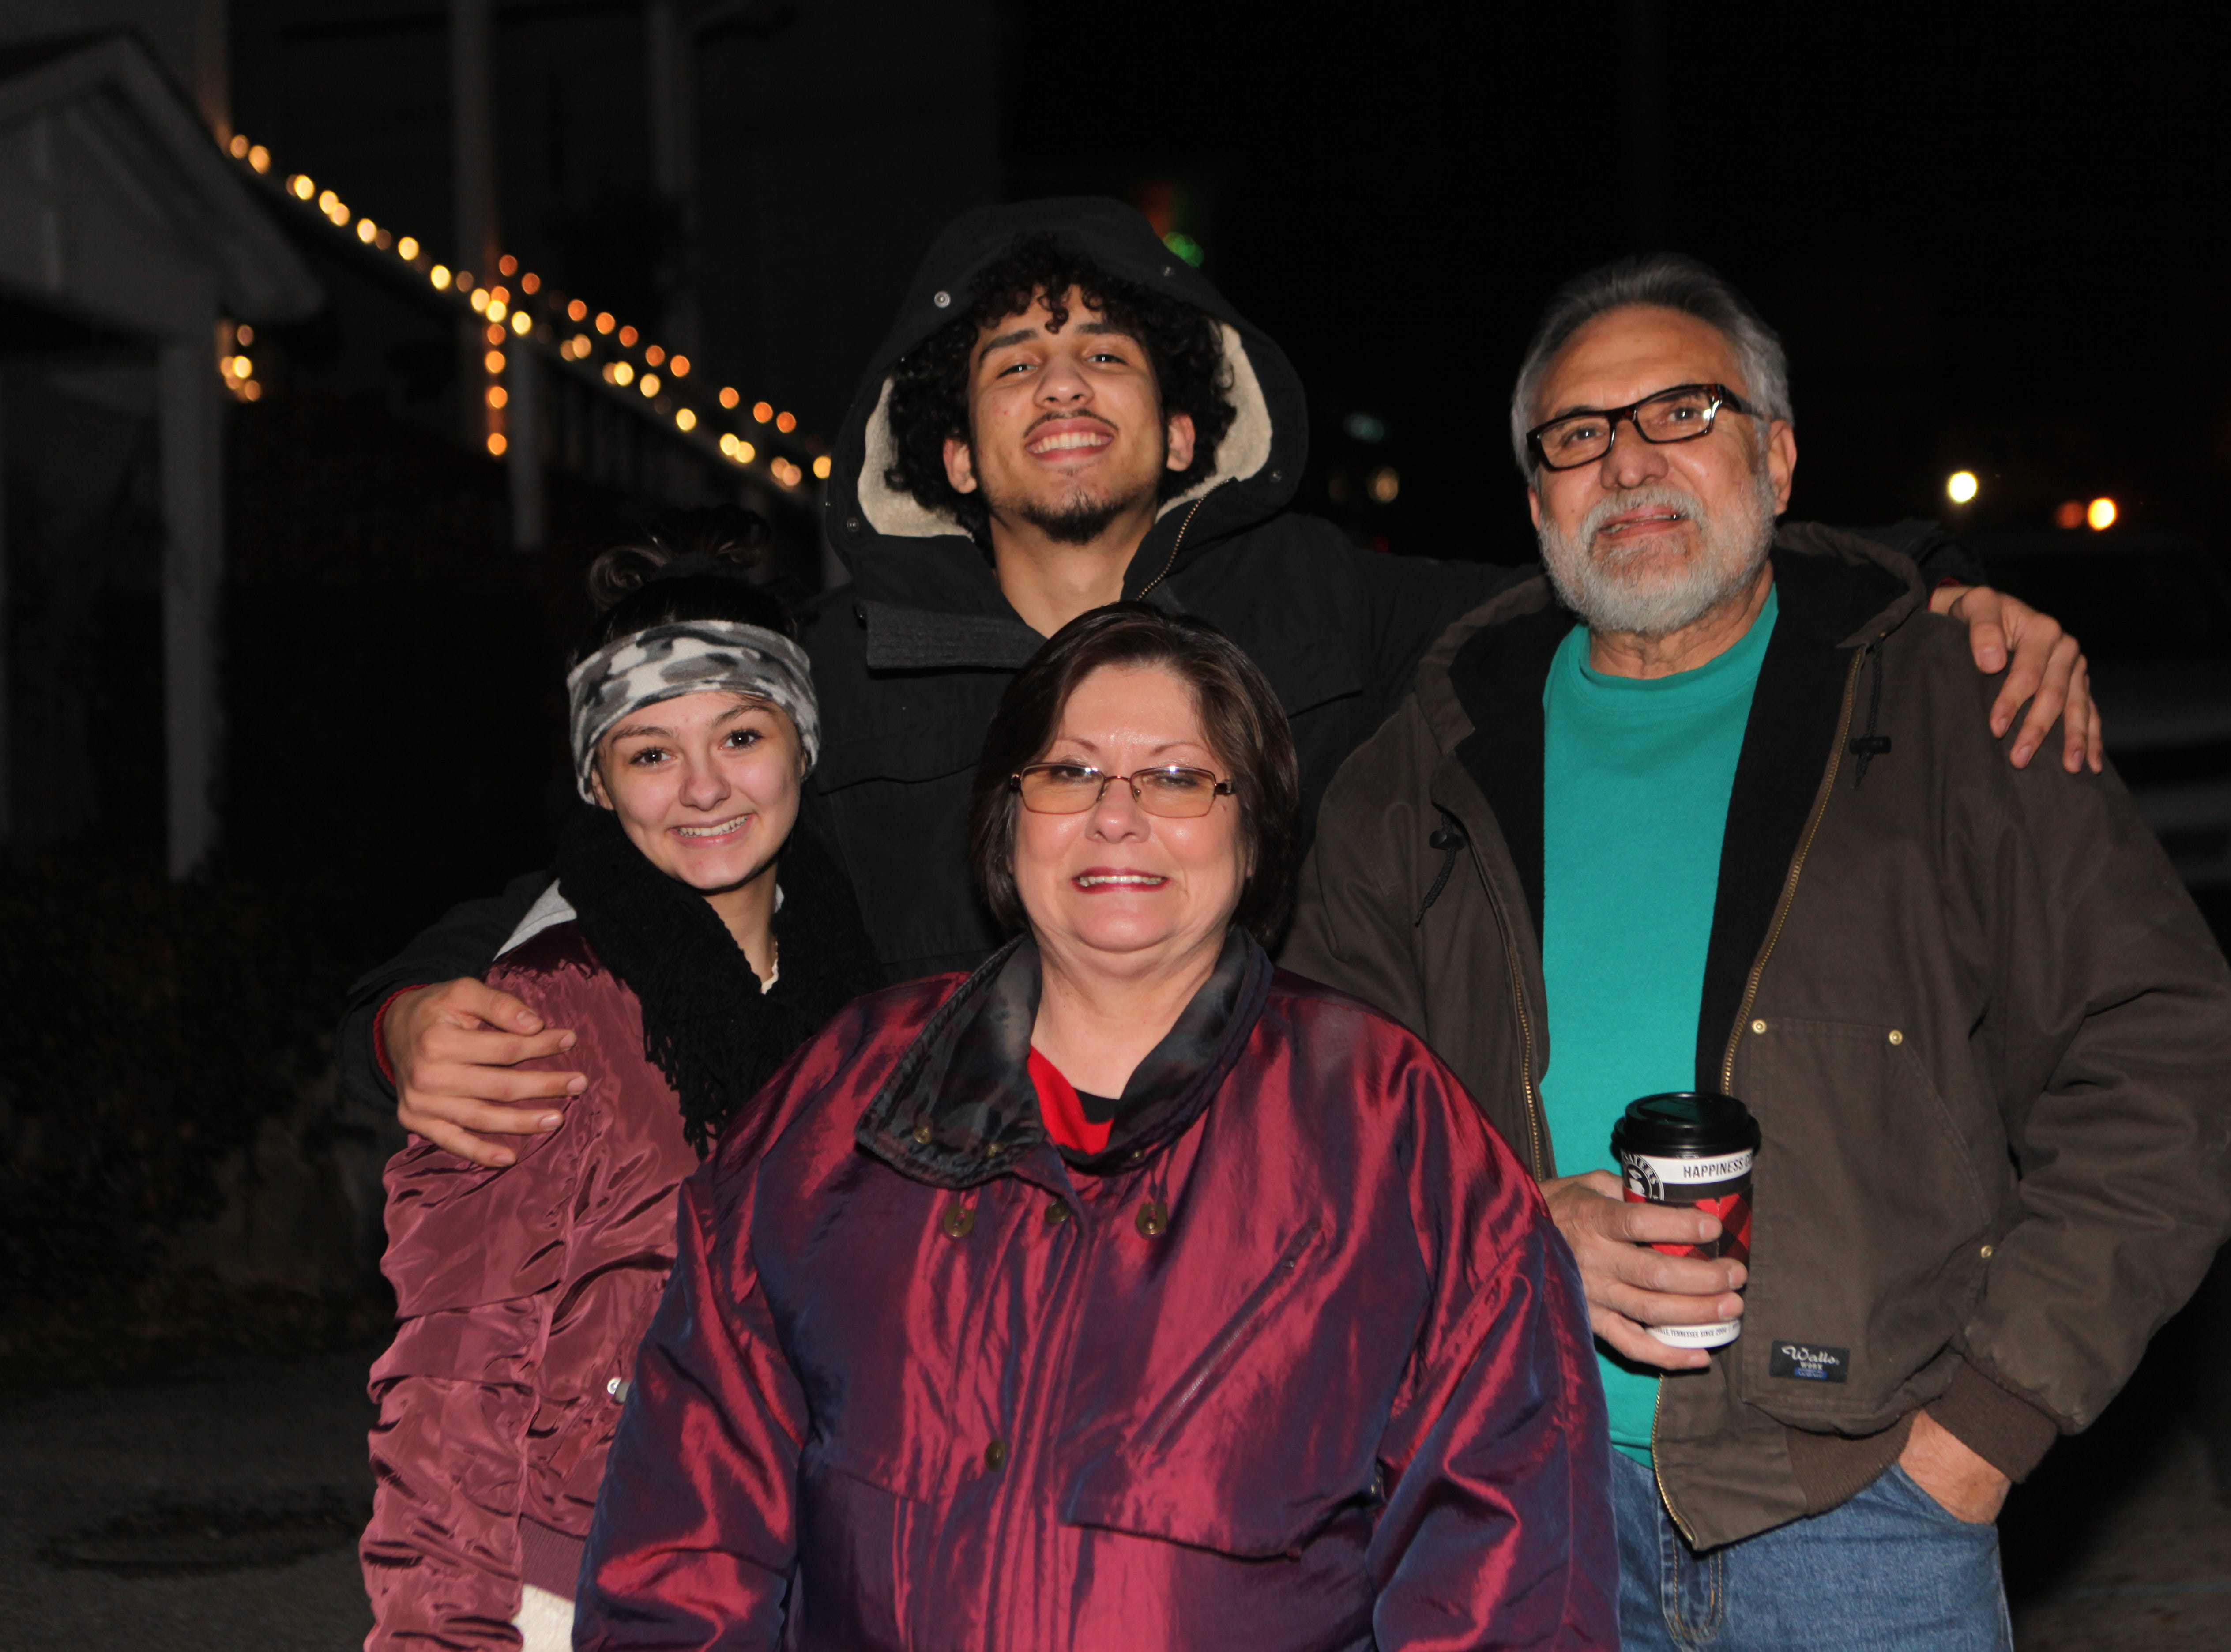 Abigail, Gloria and Mario Raygoza with Jebed Colon smile at the annual Illuminating Dog Hill event with candlelit luminaria Saturday, Dec. 22, 2018, in Clarksville, Tenn.